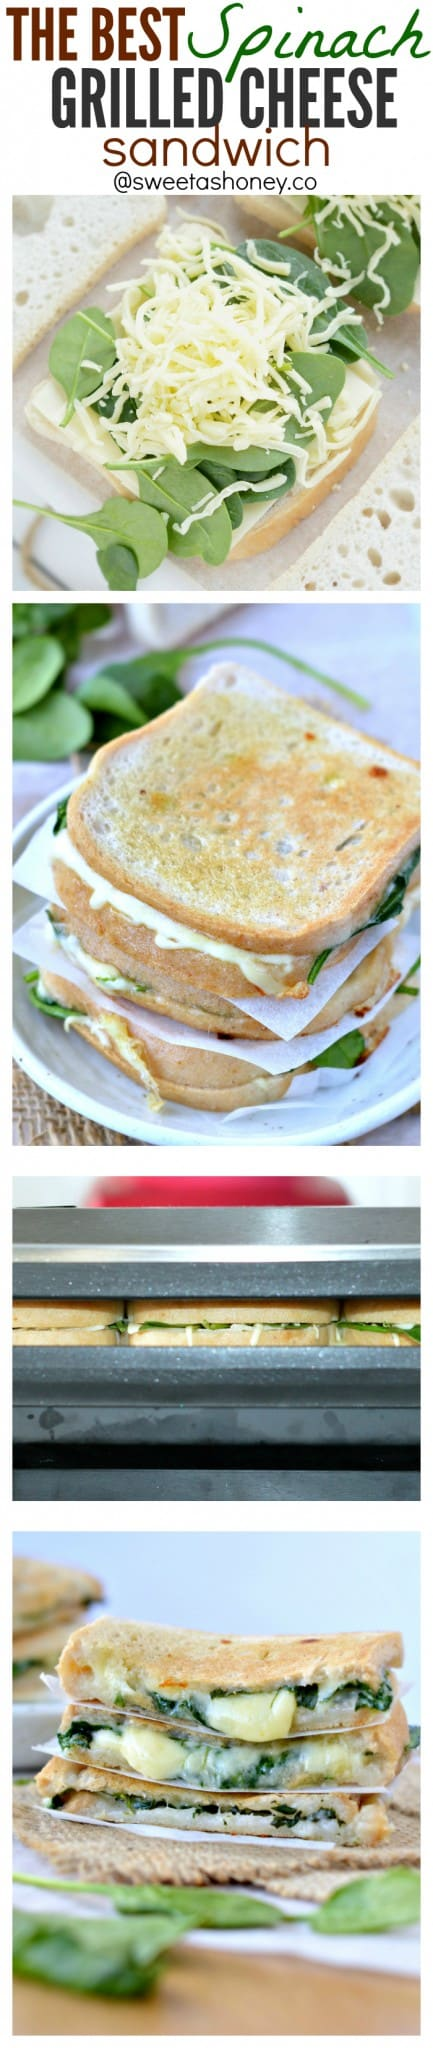 best grilled cheese sandwich